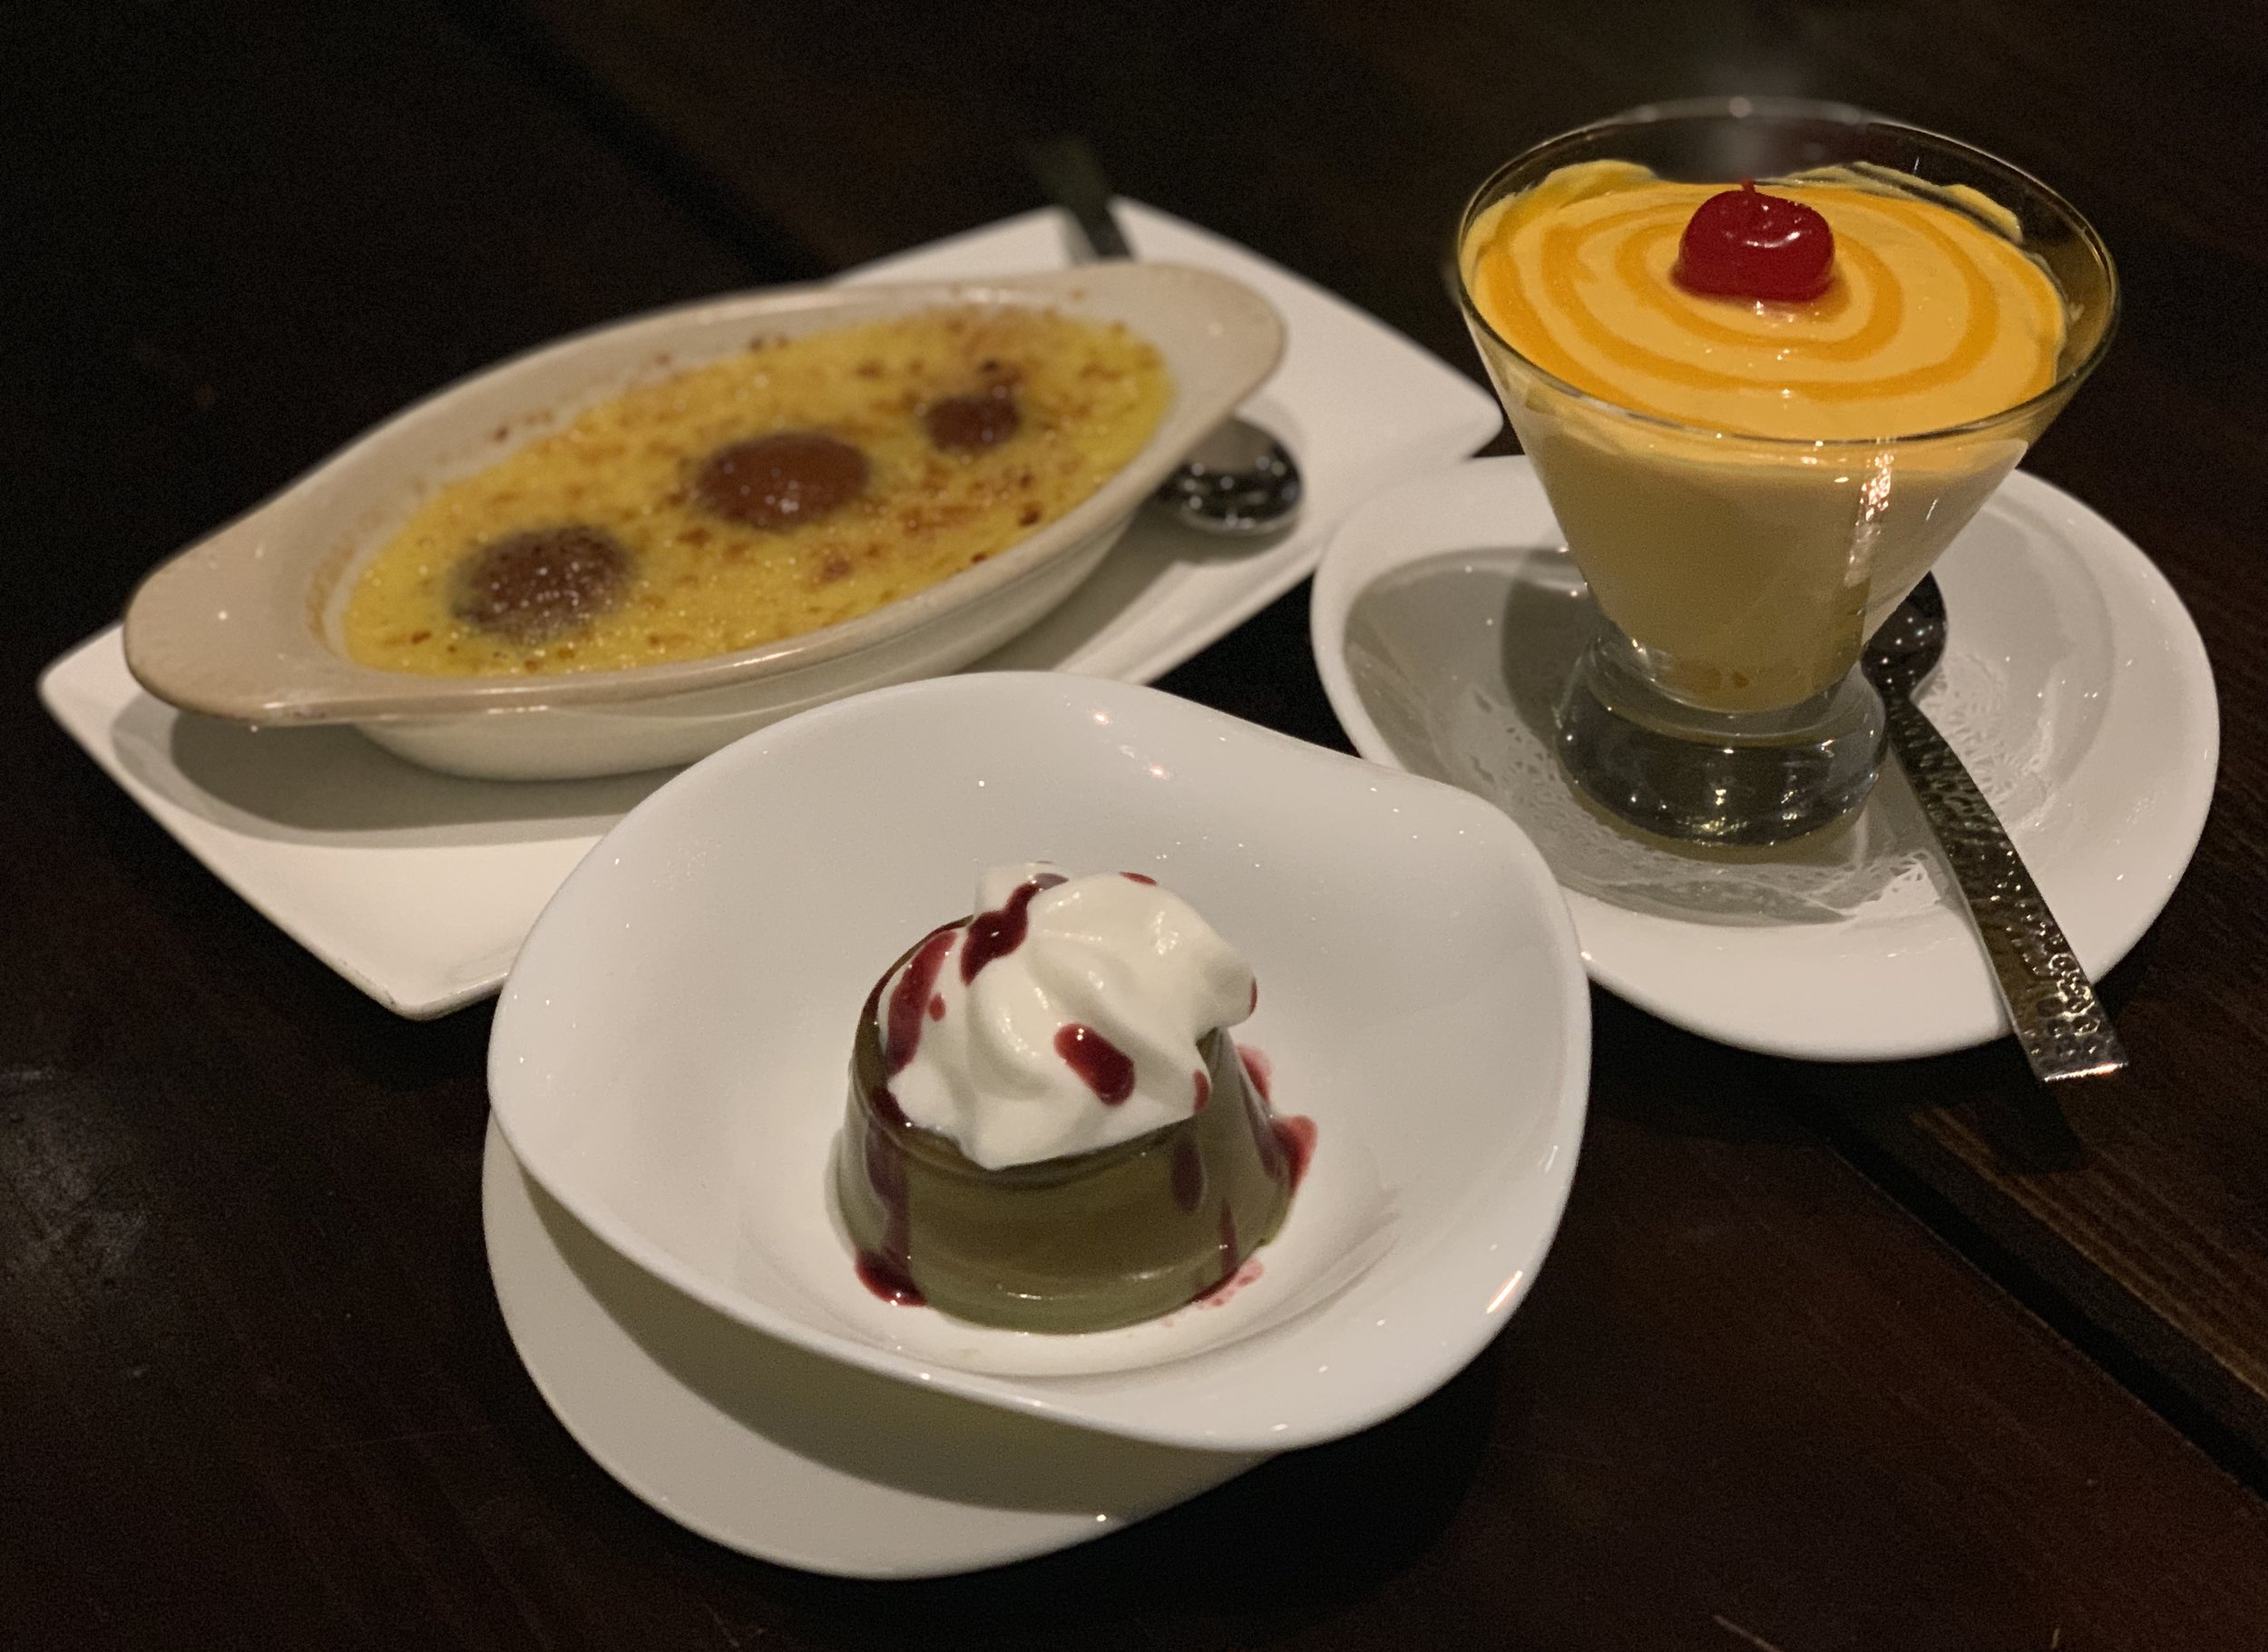 Gulab Jamun, Panna Cotta, and Mango Mousse